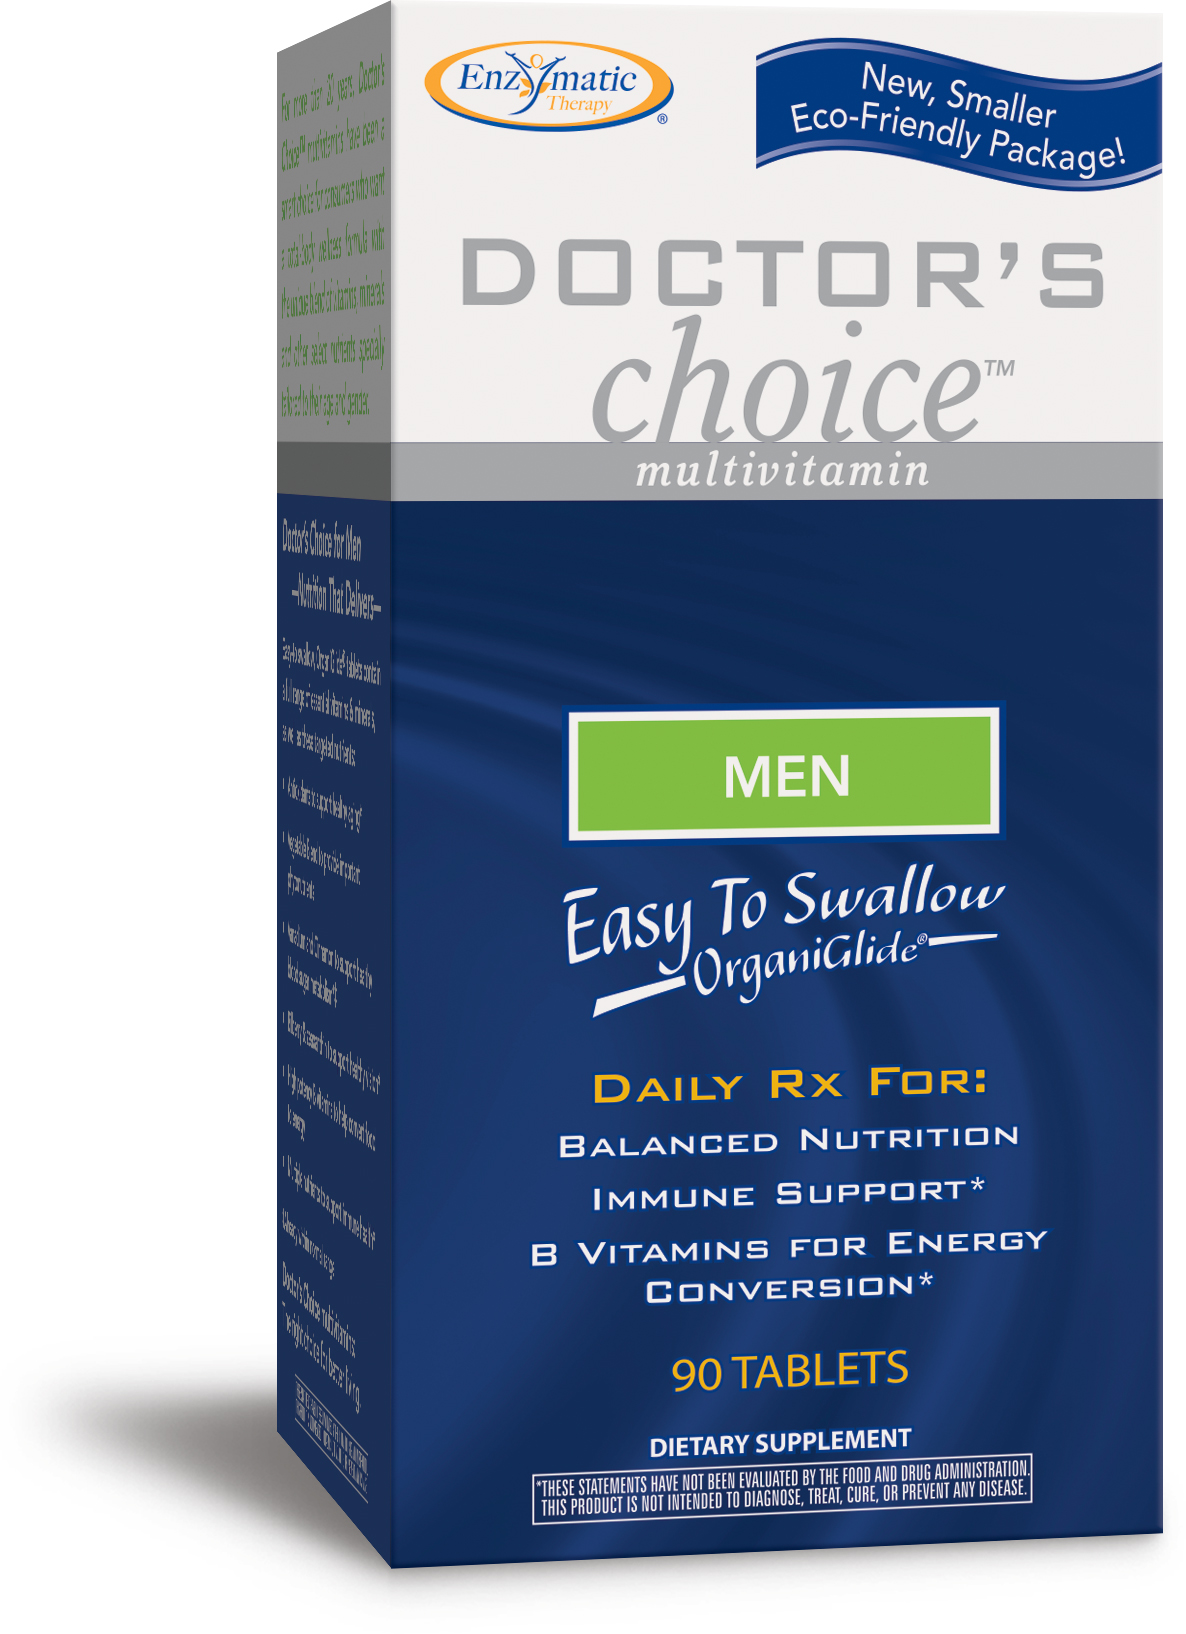 Doctor's Choice Multivitamins Men 90 tabs by Enzymatic Therapy